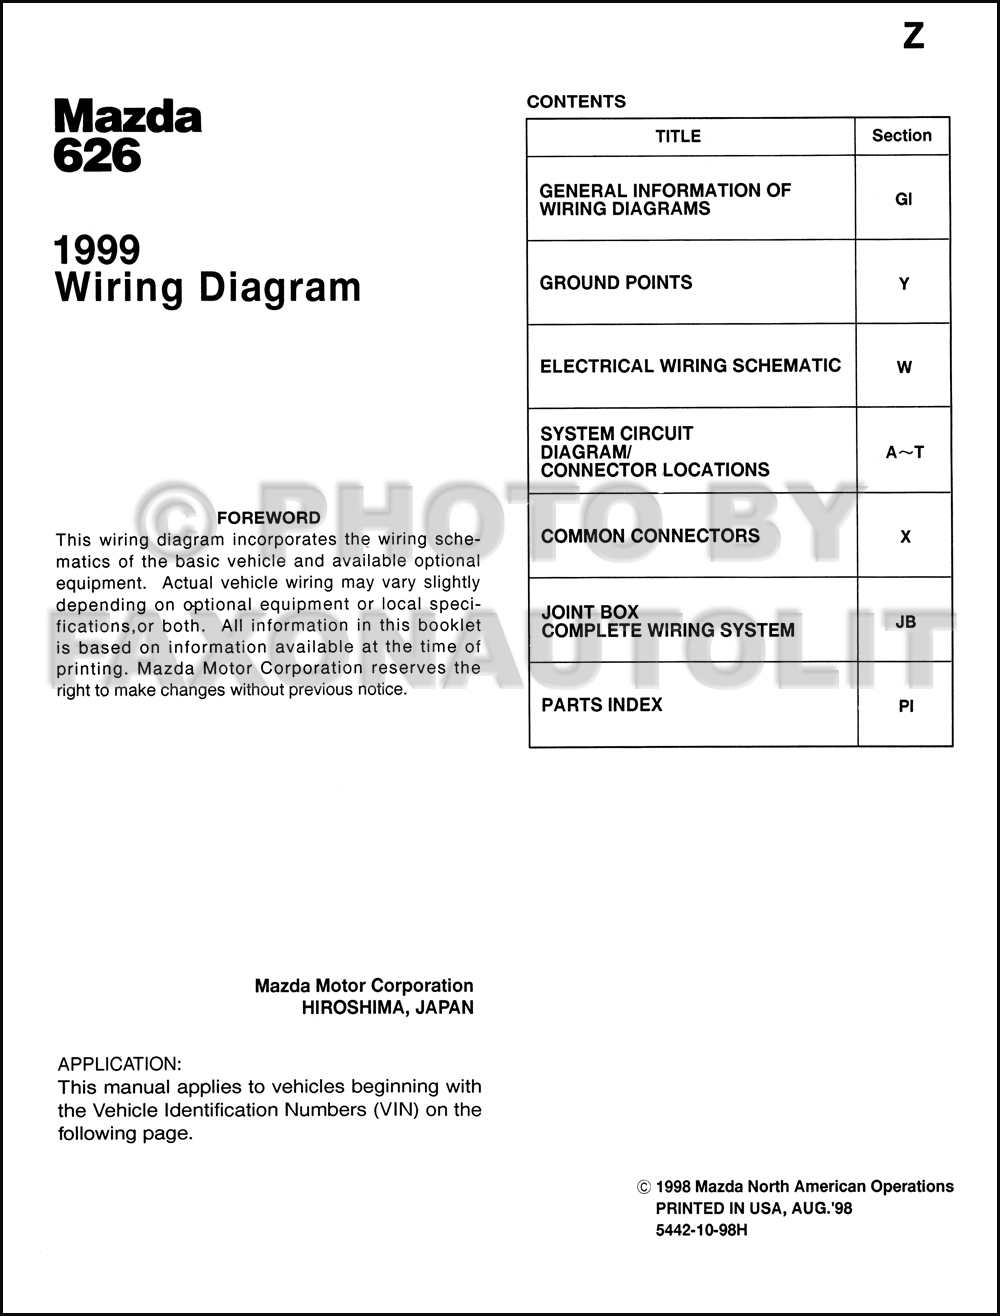 Mazda 626 Wiring Diagrams Books Of Diagram 2002 1999 Manual Original Rh Faxonautoliterature Com 1998 Radio